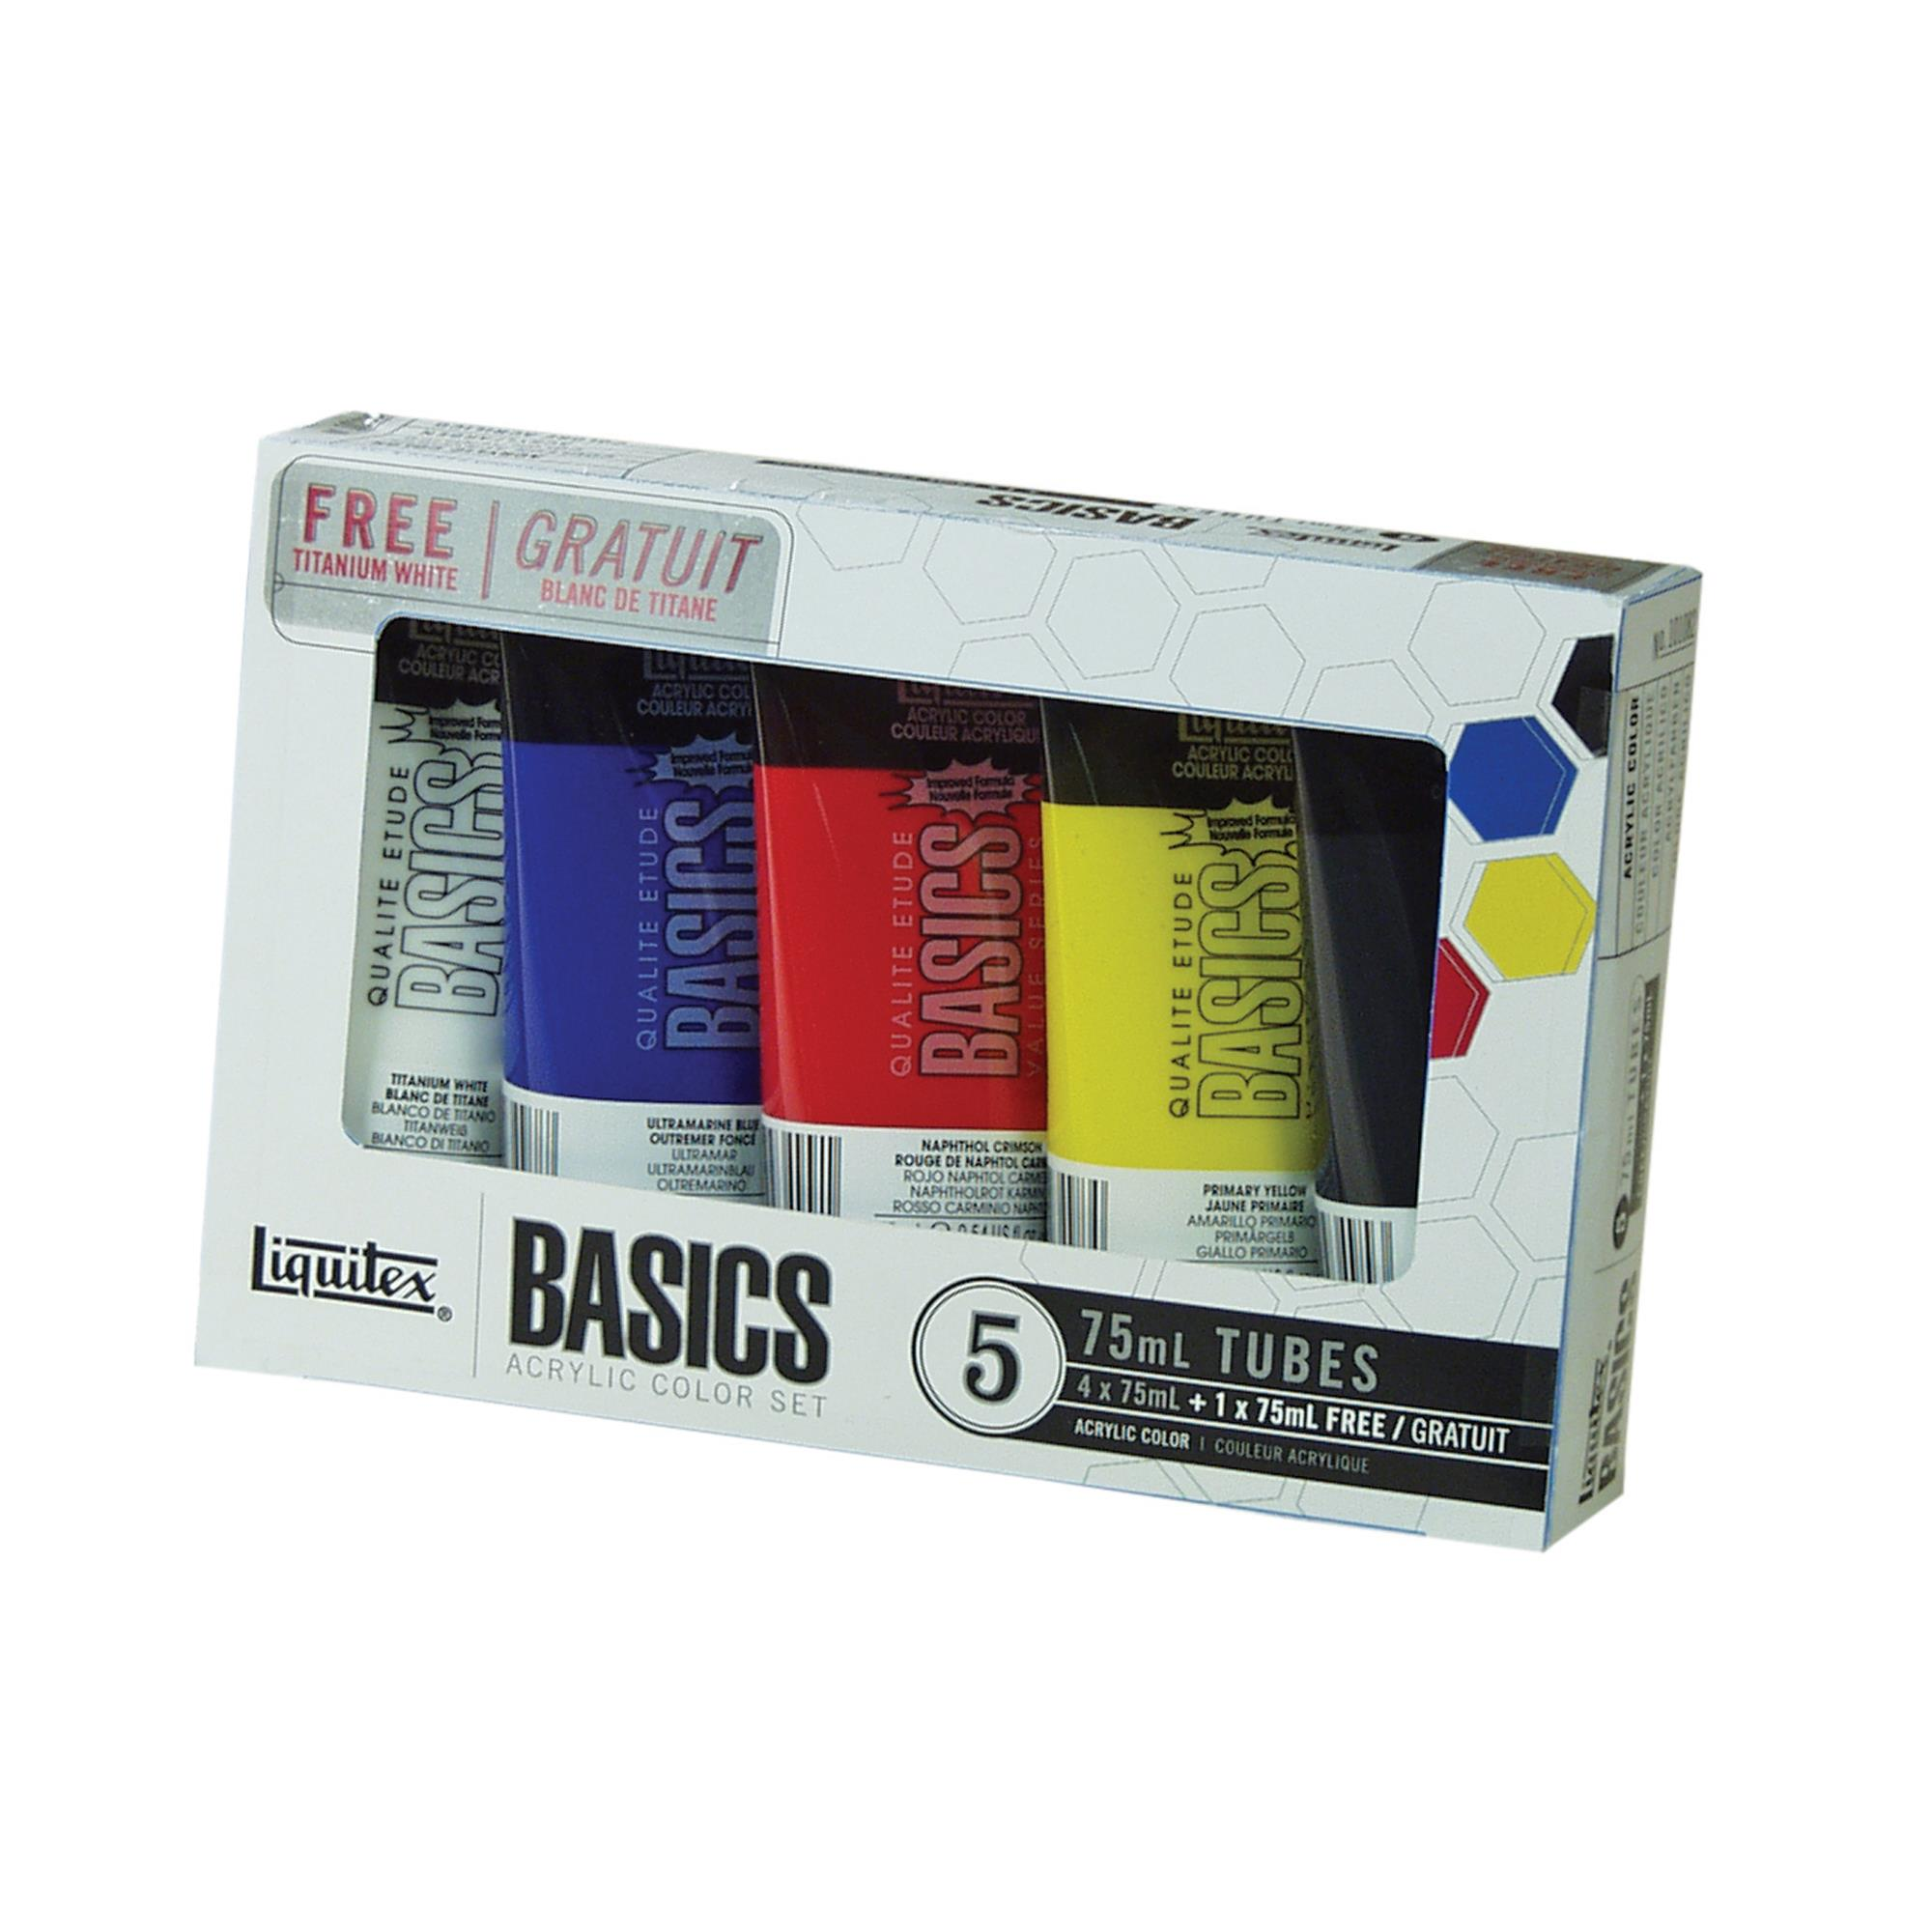 Liquitex BASICS Acrylic Paint 75ml/Tube, 5-Piece Set